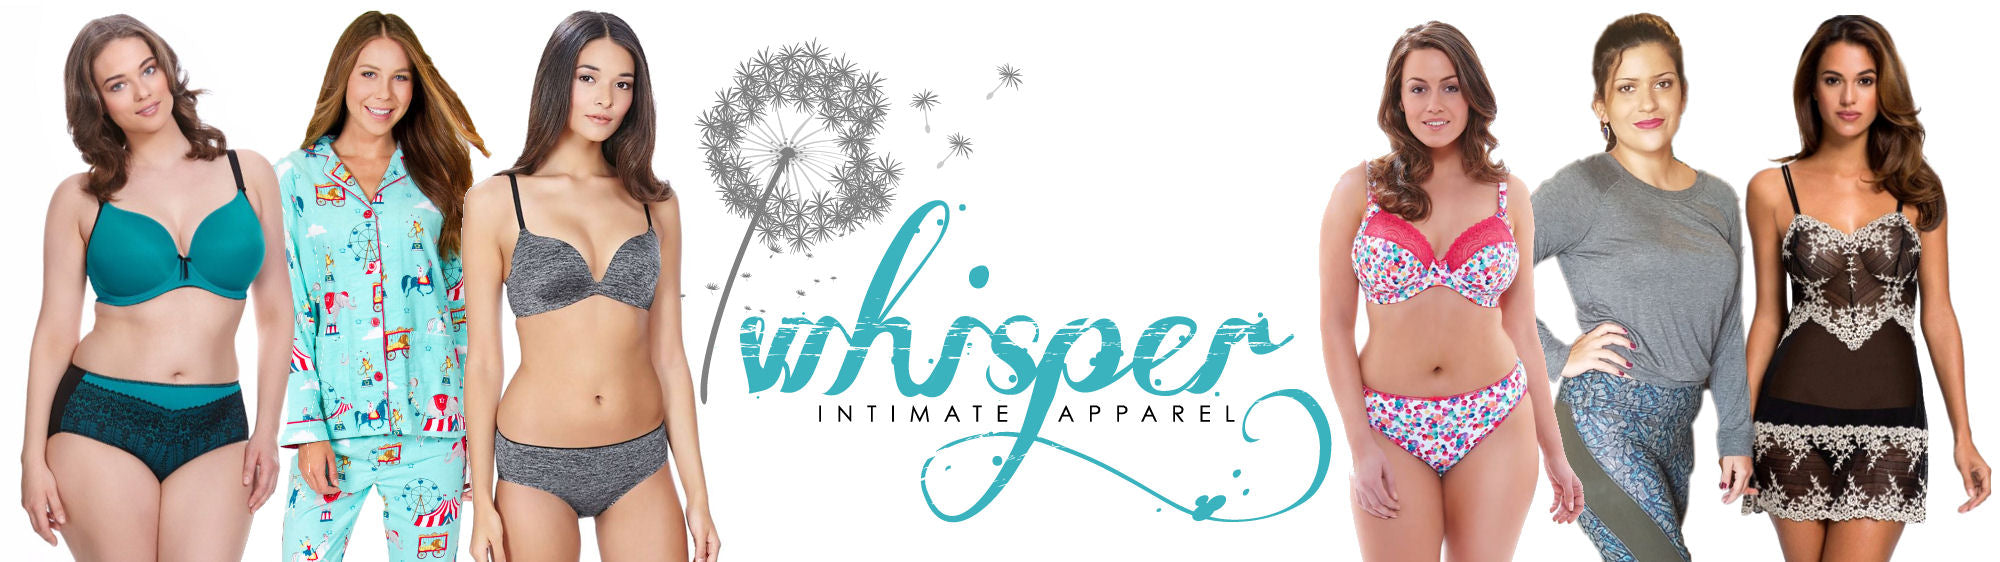 Whisper Intimate Apparel